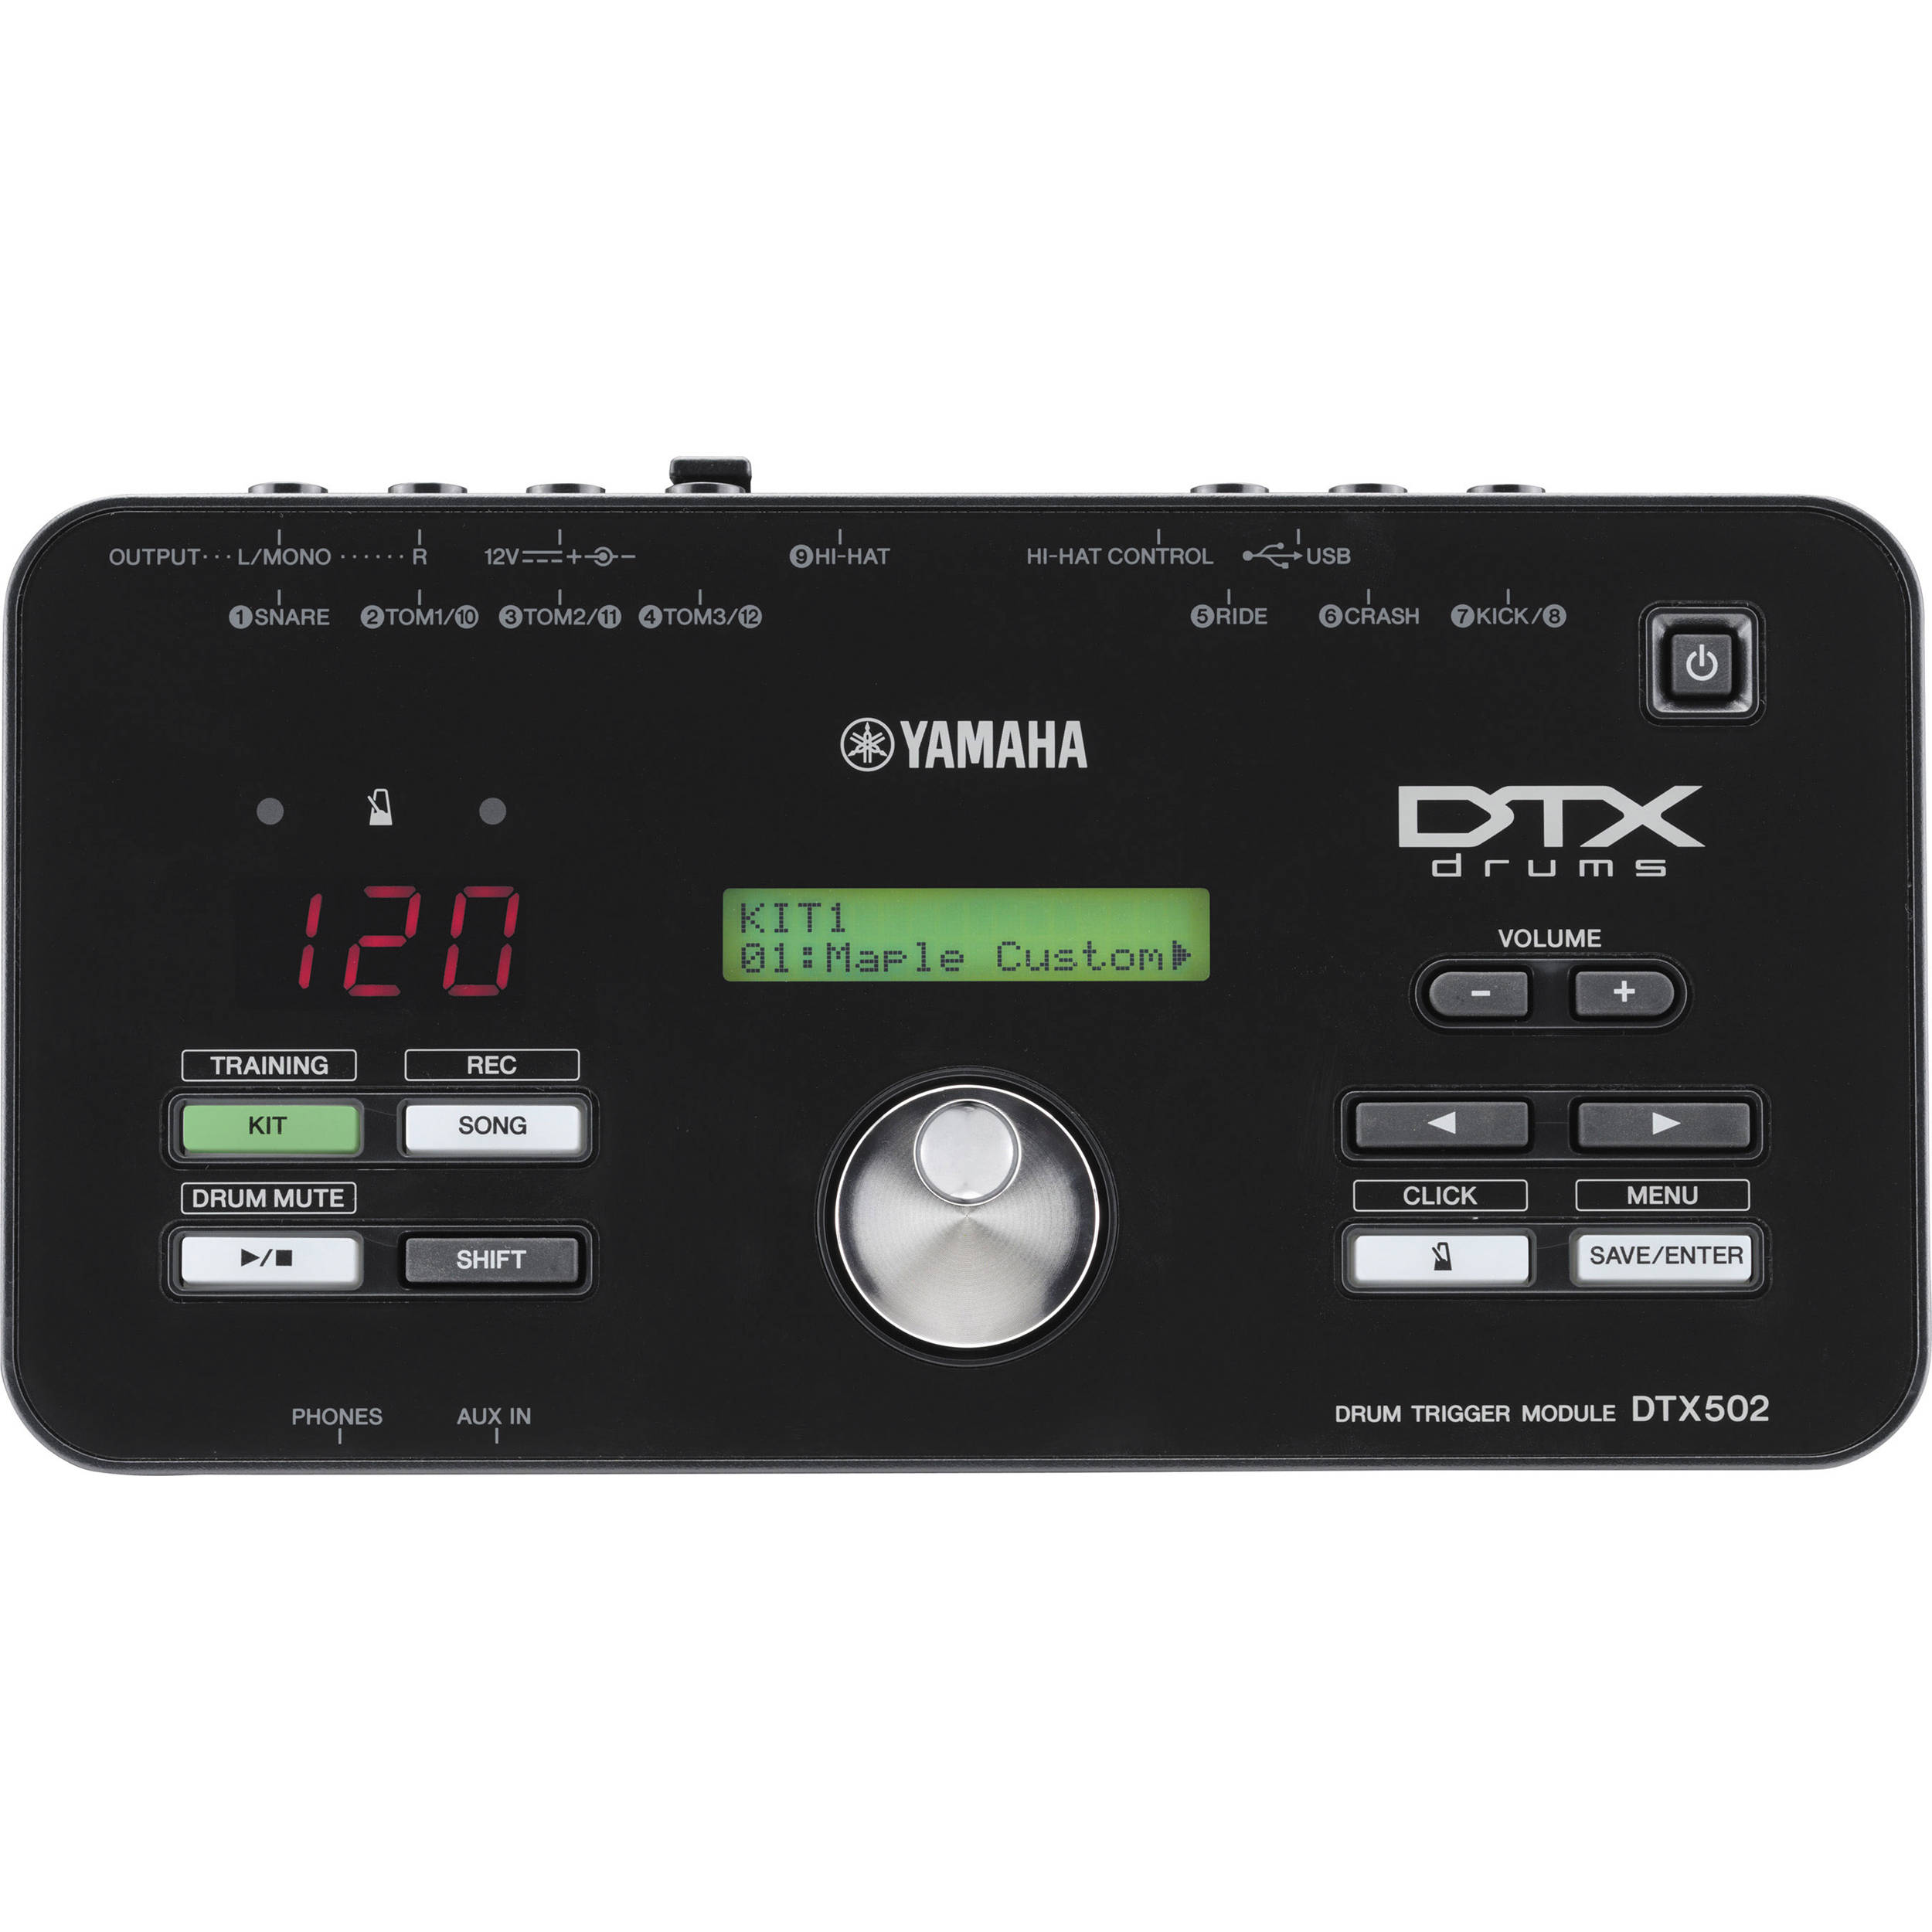 Yamaha DTX502 Electronic Drum Trigger Module for DTX522/32/42/62K Drum Kits